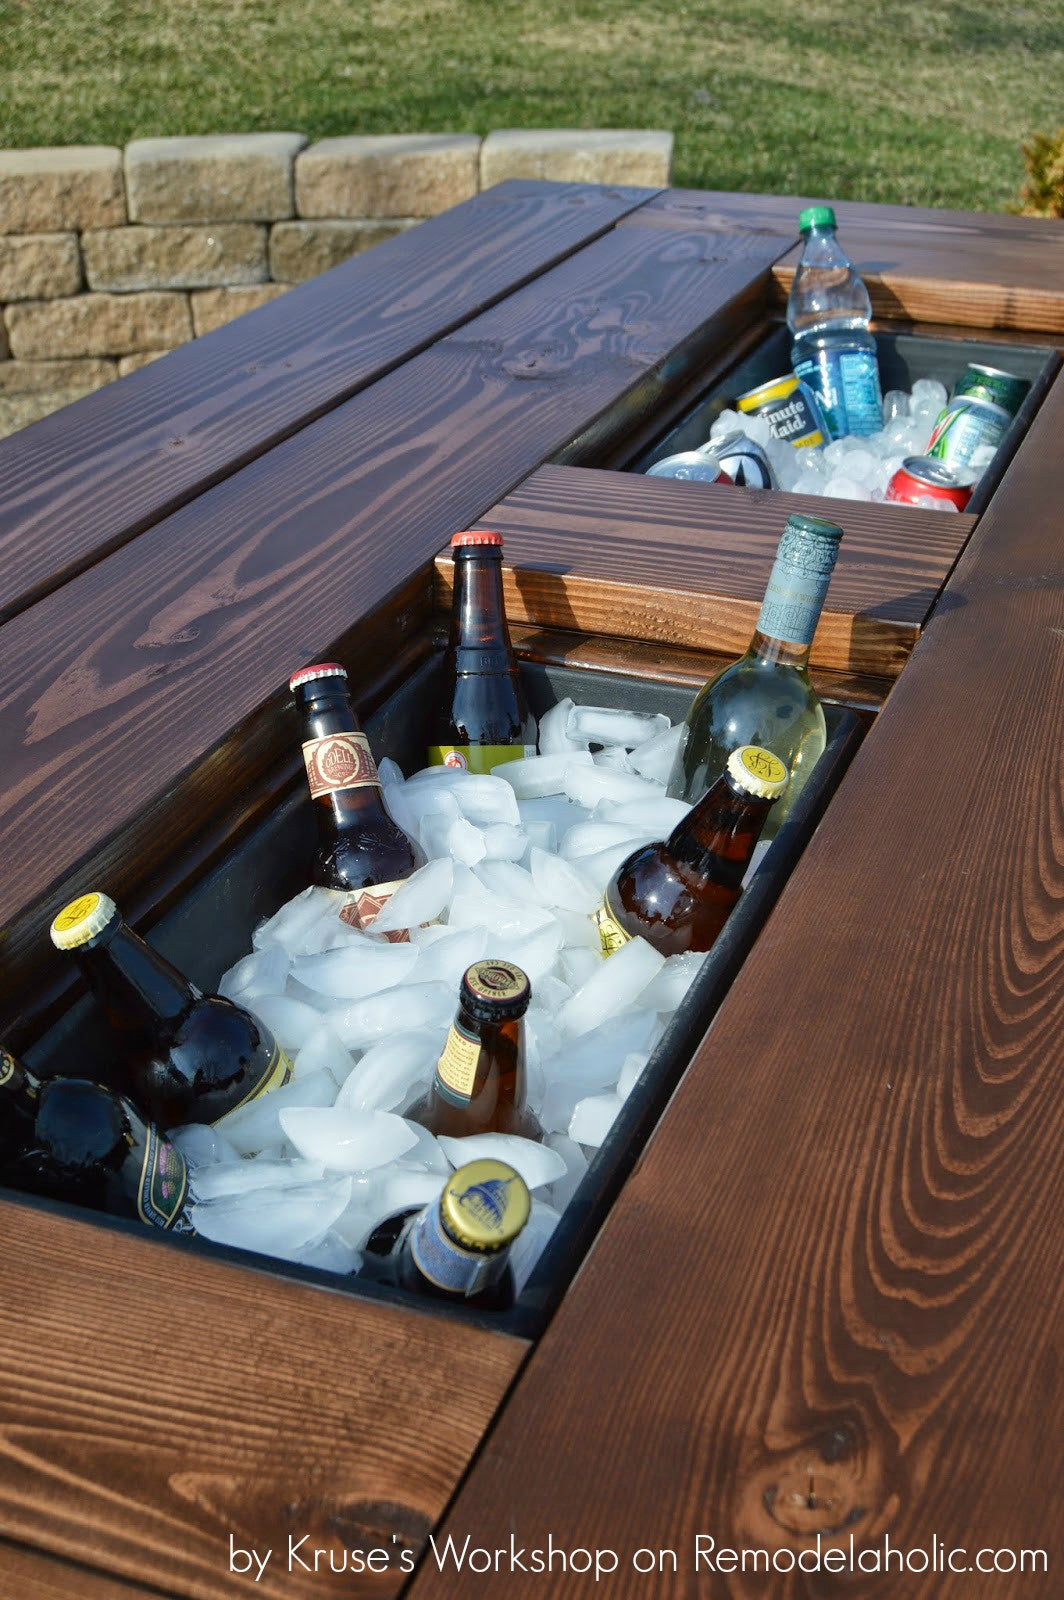 Stencil Stop - Father's Day DIY Gifts Patio Table with Built-In Ice Chests